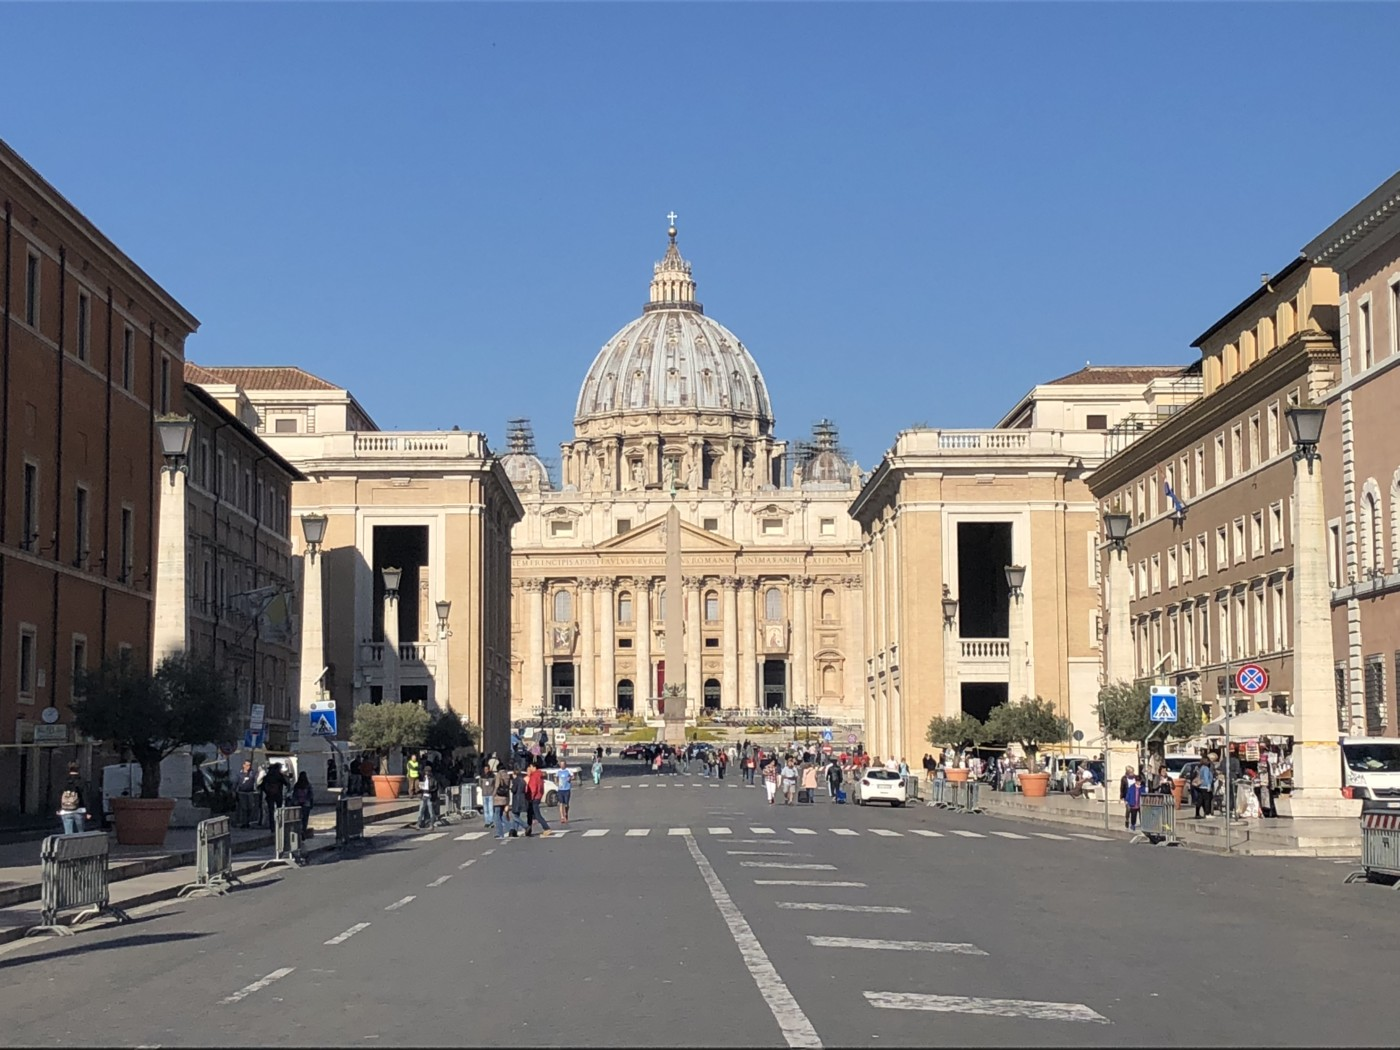 Visiting the Vatican, Sistine Chapel, and St. Peter's Basilica